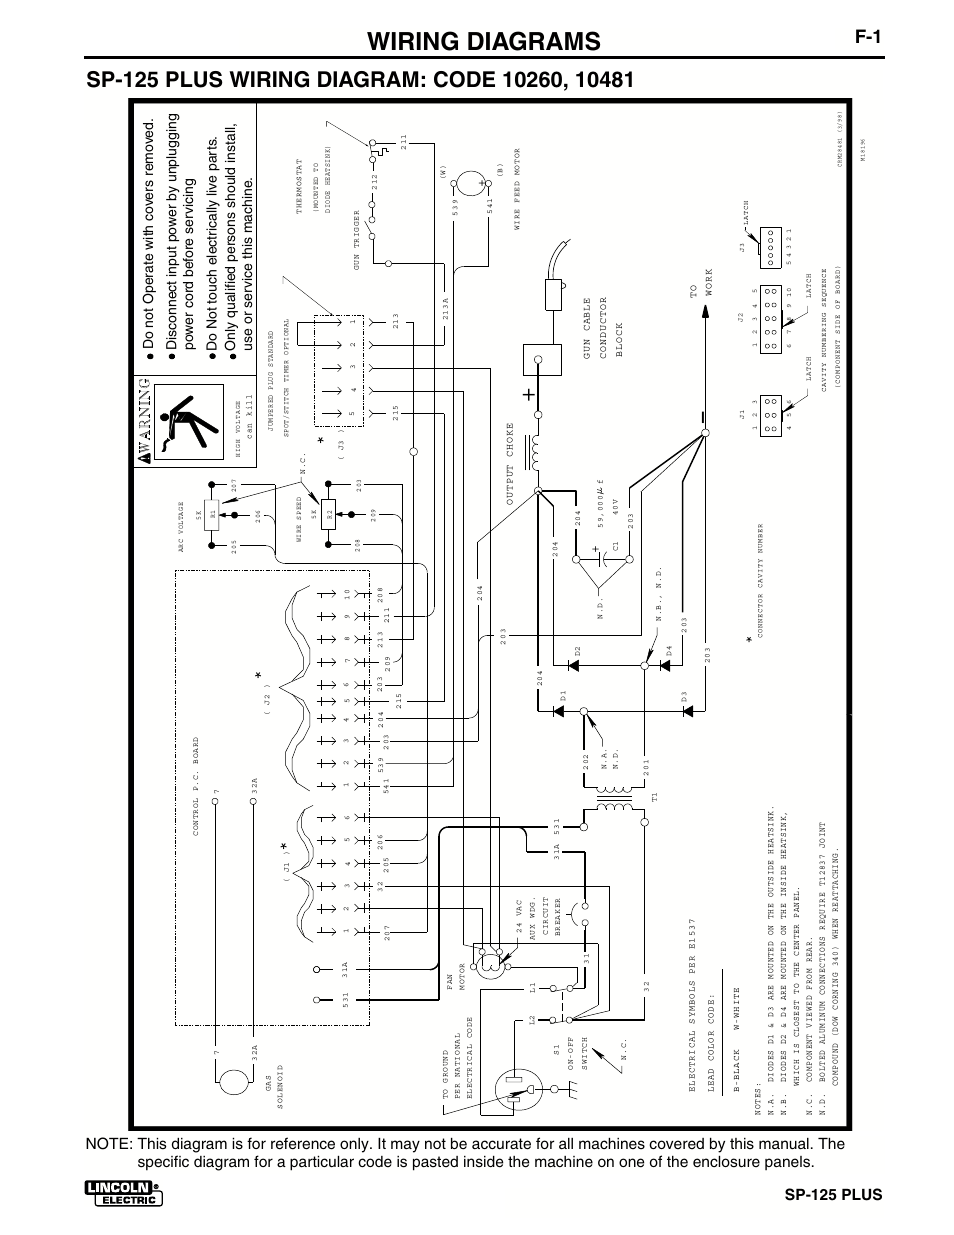 hight resolution of wiring diagrams sp 125 plus lincoln electric im536 sp 125 plus user